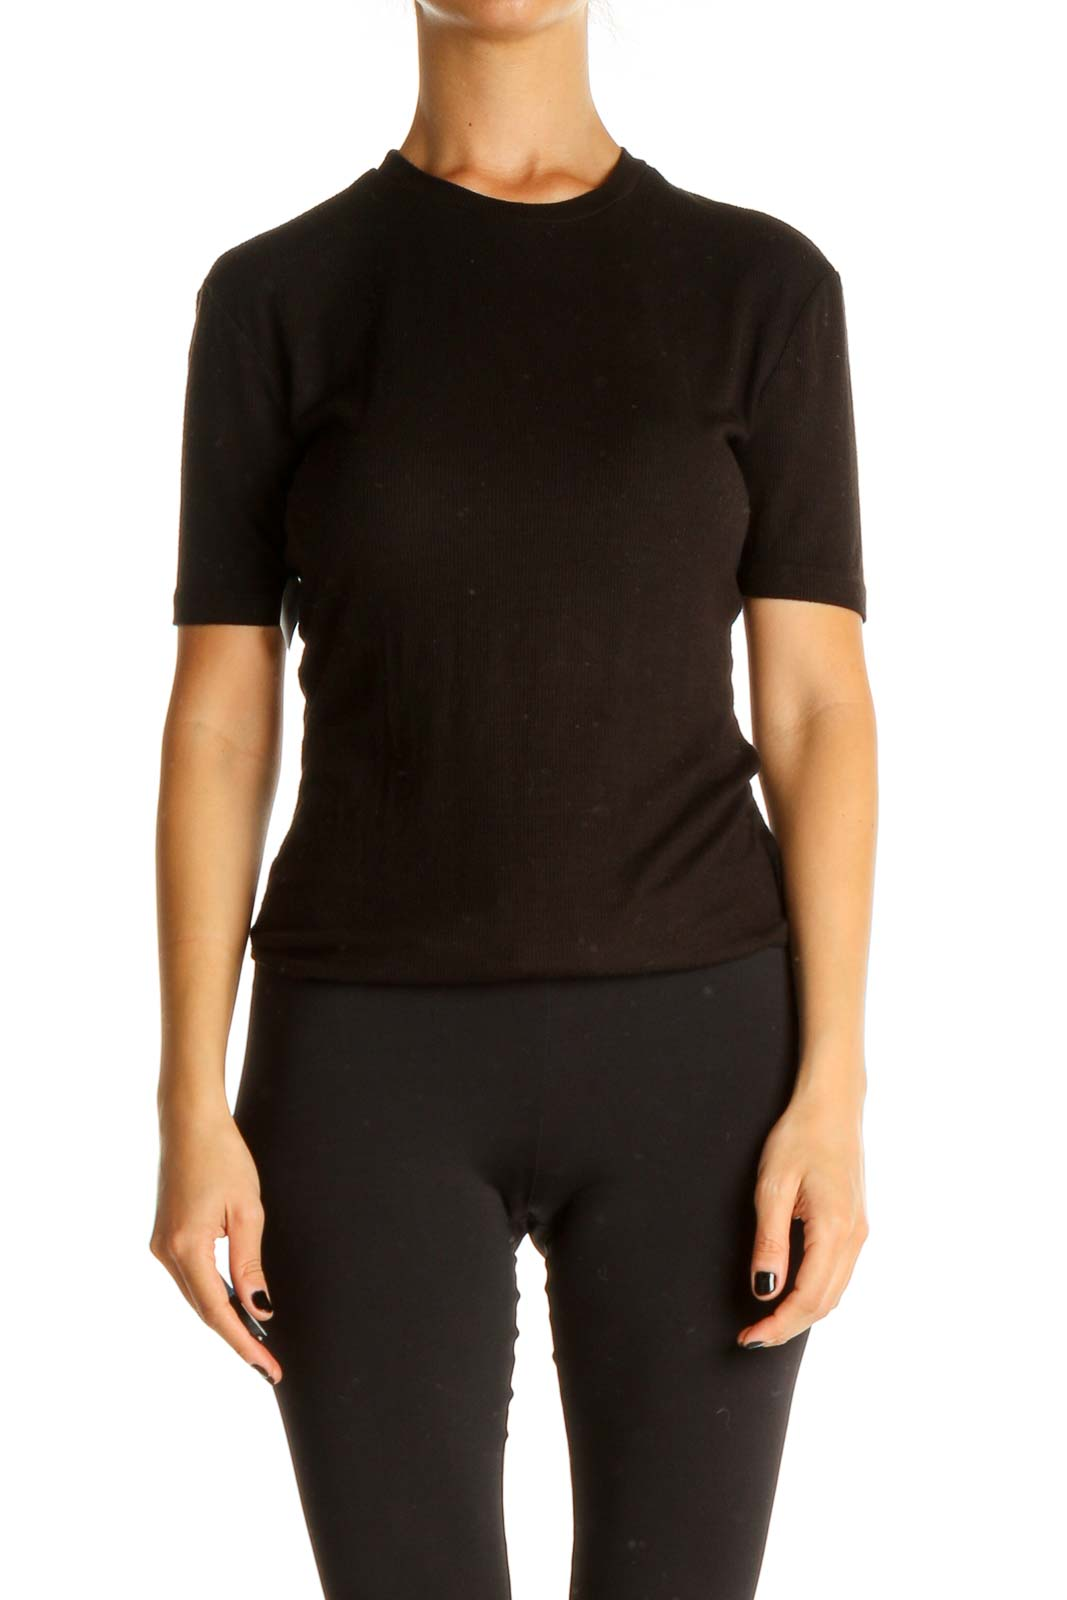 Black Solid All Day Wear Bodysuit Front